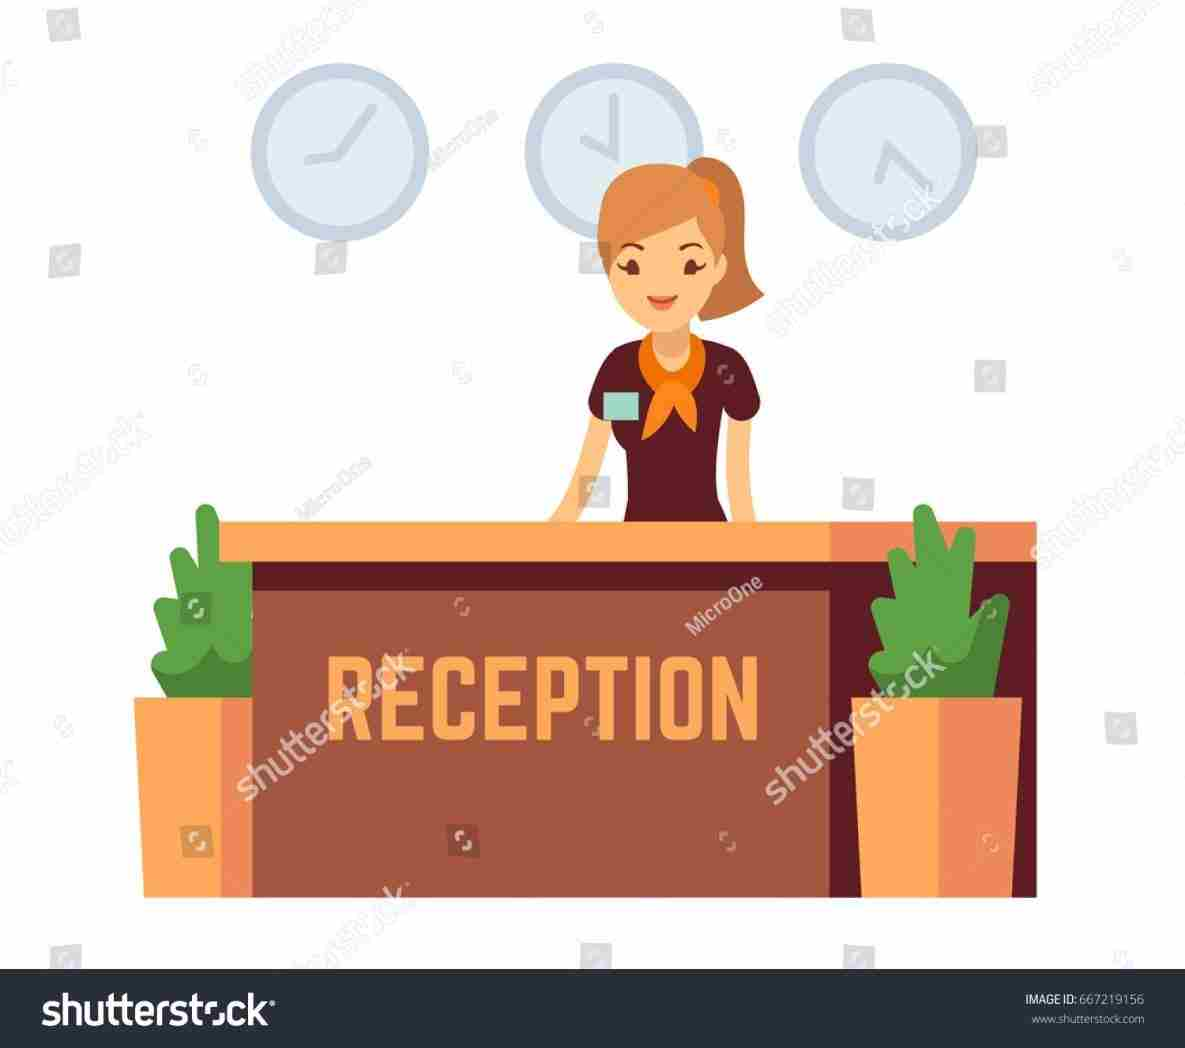 Receptionist clipart. Design hotel reception desk